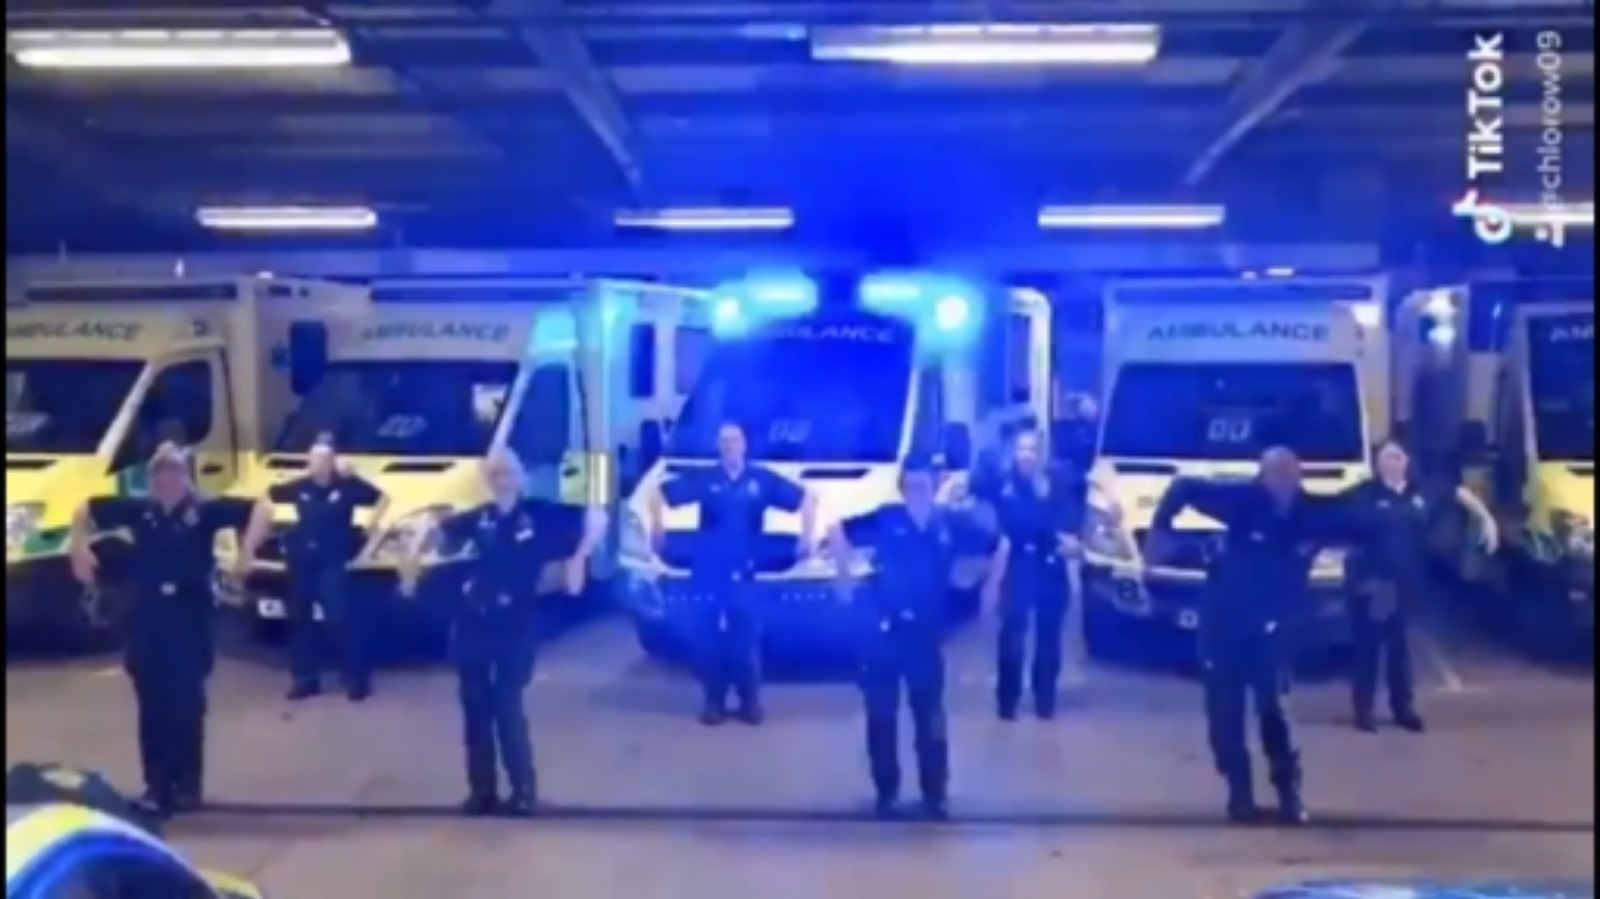 South Western Ambulance Paramedics Follow Exeter Hospital Staff In Synchronised Dance Routine West Country Itv News I'm not like other girls, i'm on alt tik tok (follow me on tik tok @vapordad). exeter hospital staff in synchronised